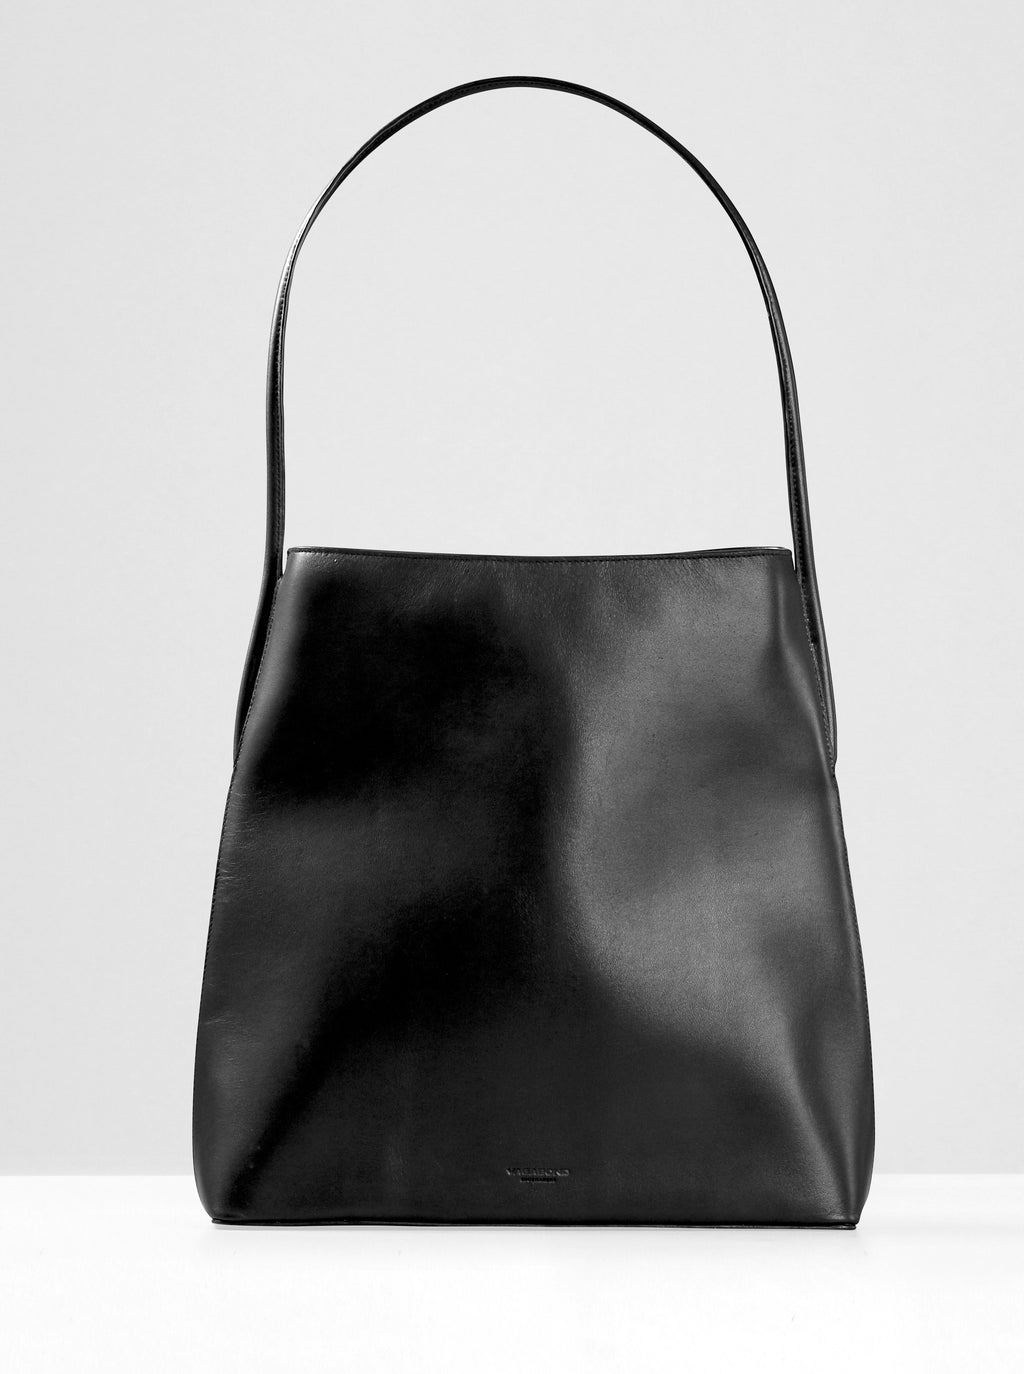 Vagabond - Lalova Leather Shoulder Bag / Black